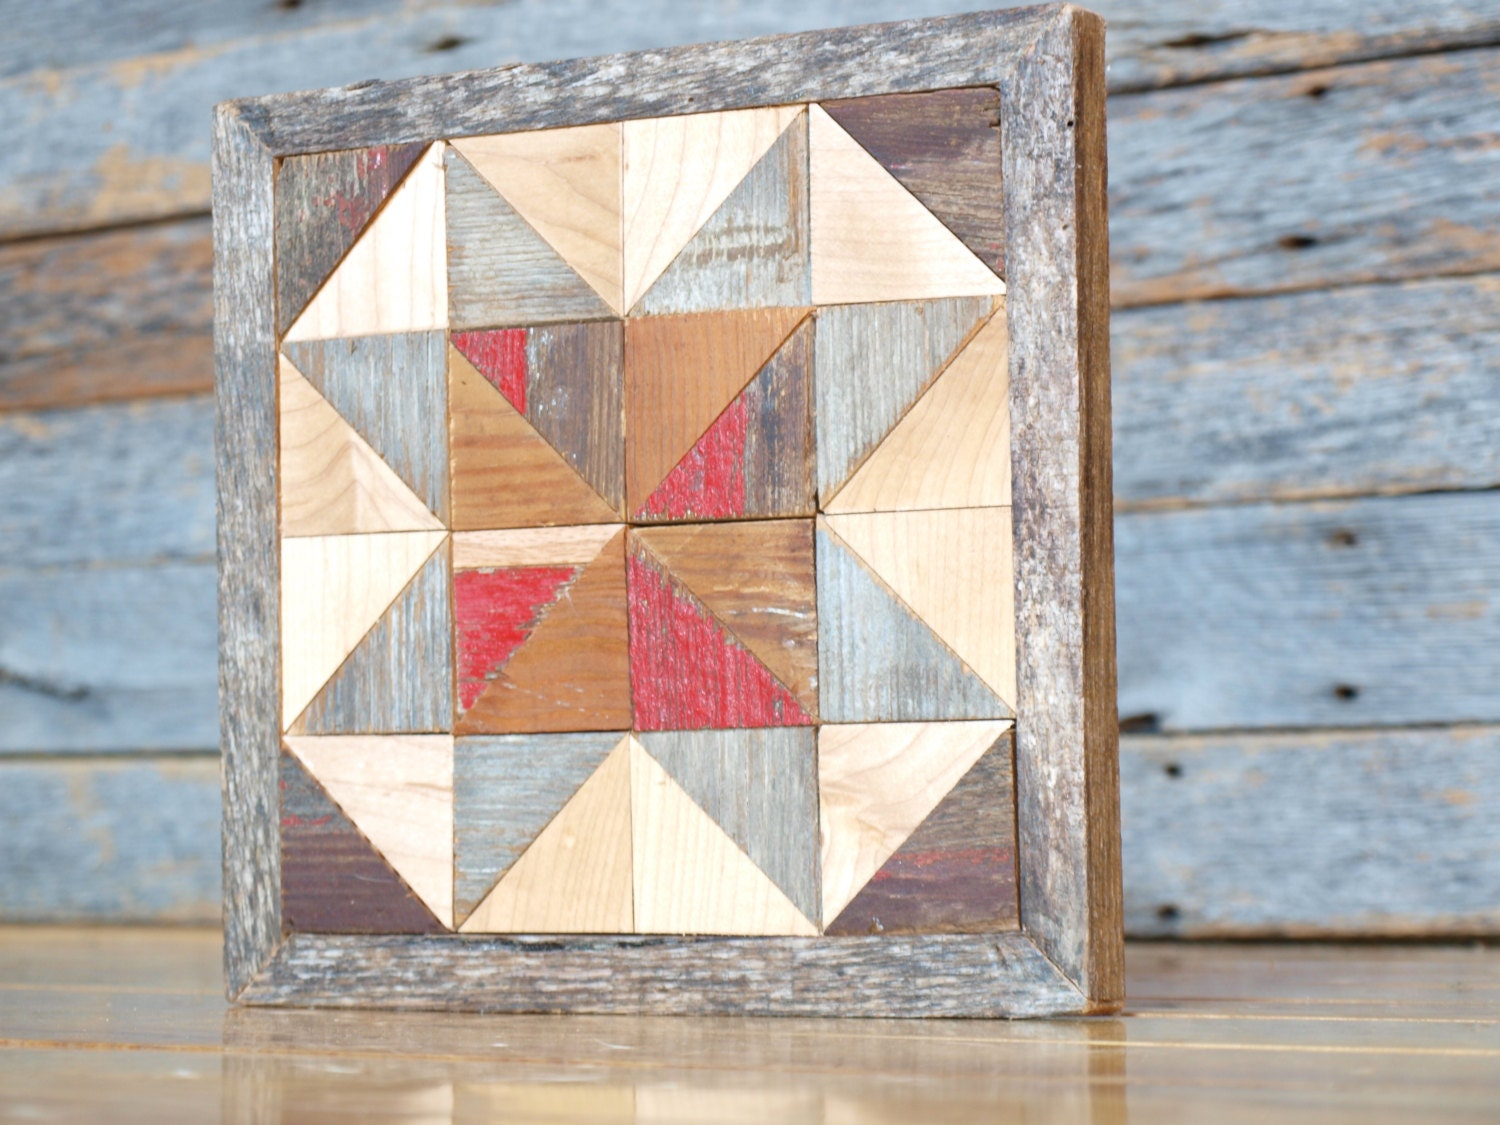 wooden quilt block salvaged barnboards by IlluminativeHarvest